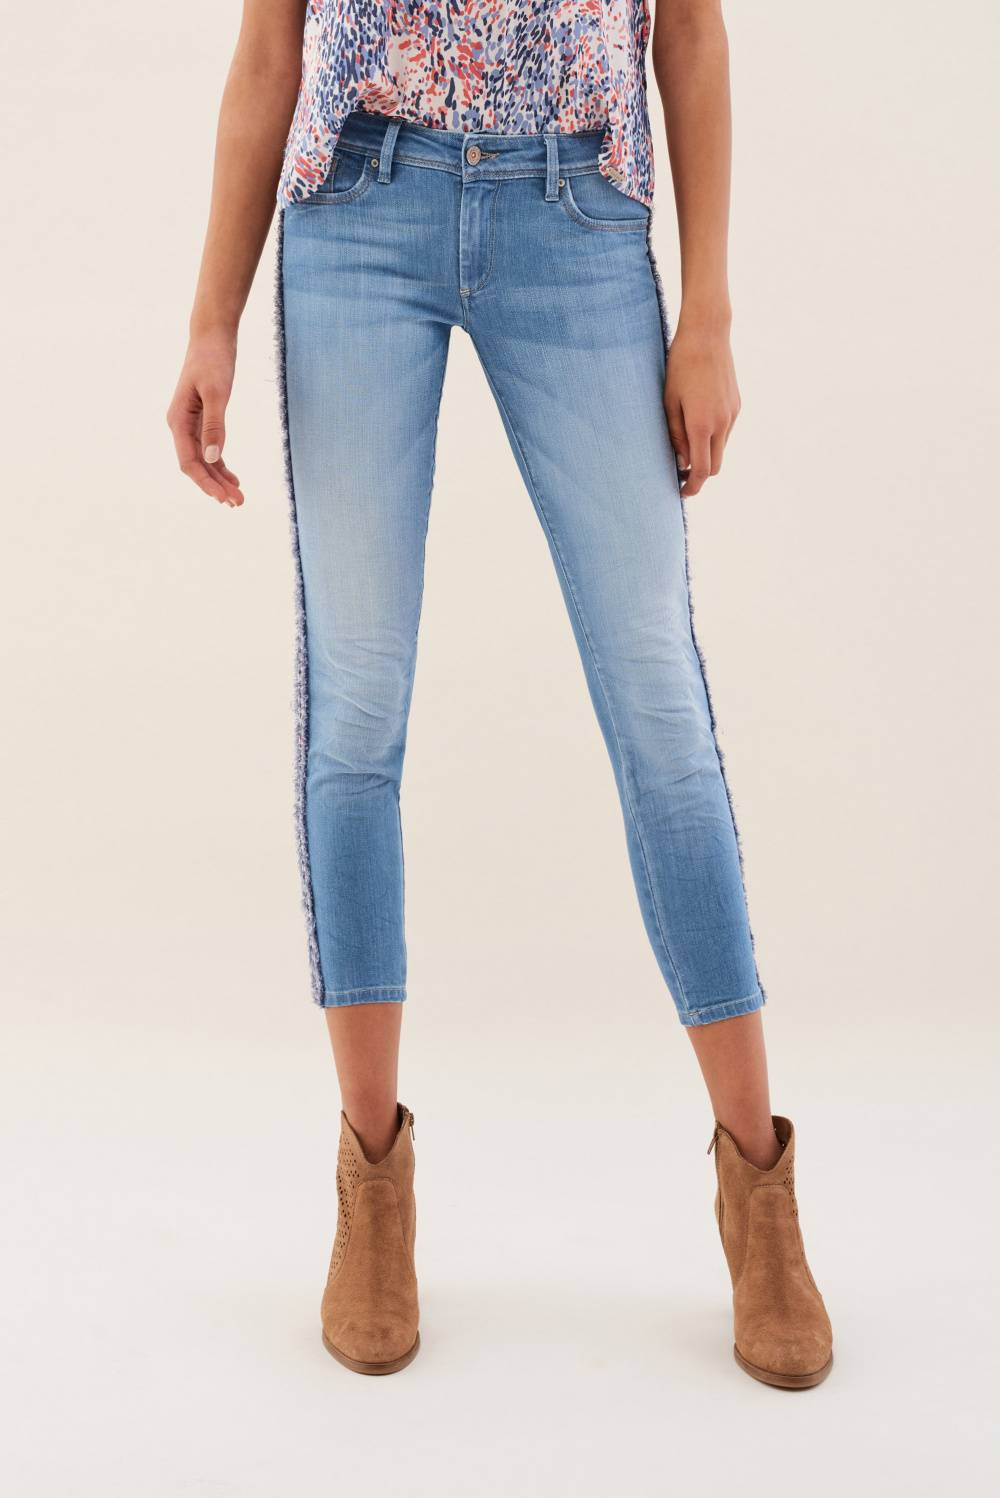 Capri Wonder jeans with lateral coloured sides - Salsa